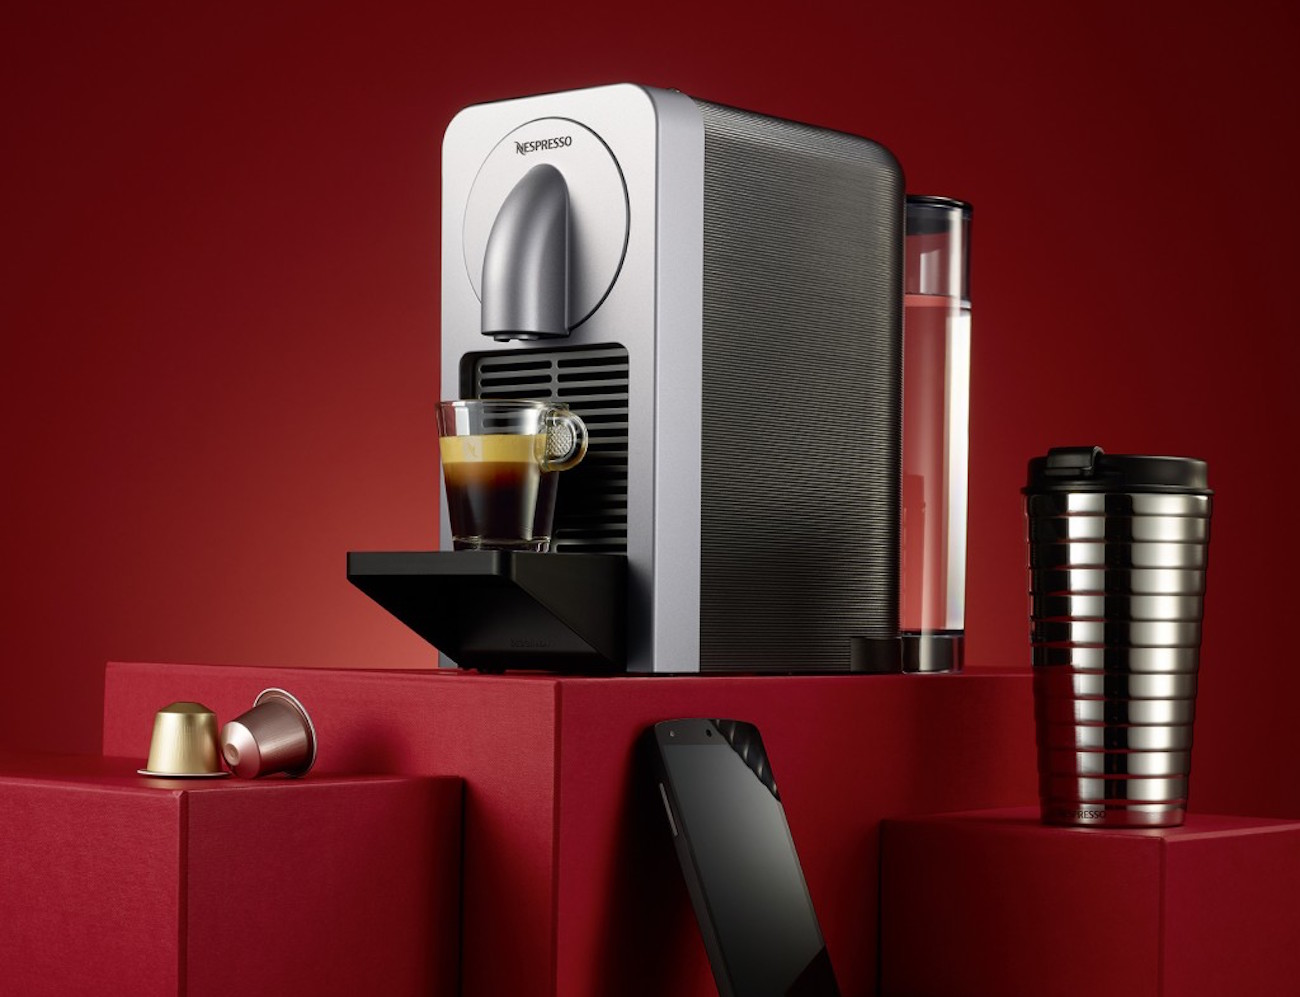 The best affordable espresso machines you can buy in 2019 - Nespresso Prodigio 2